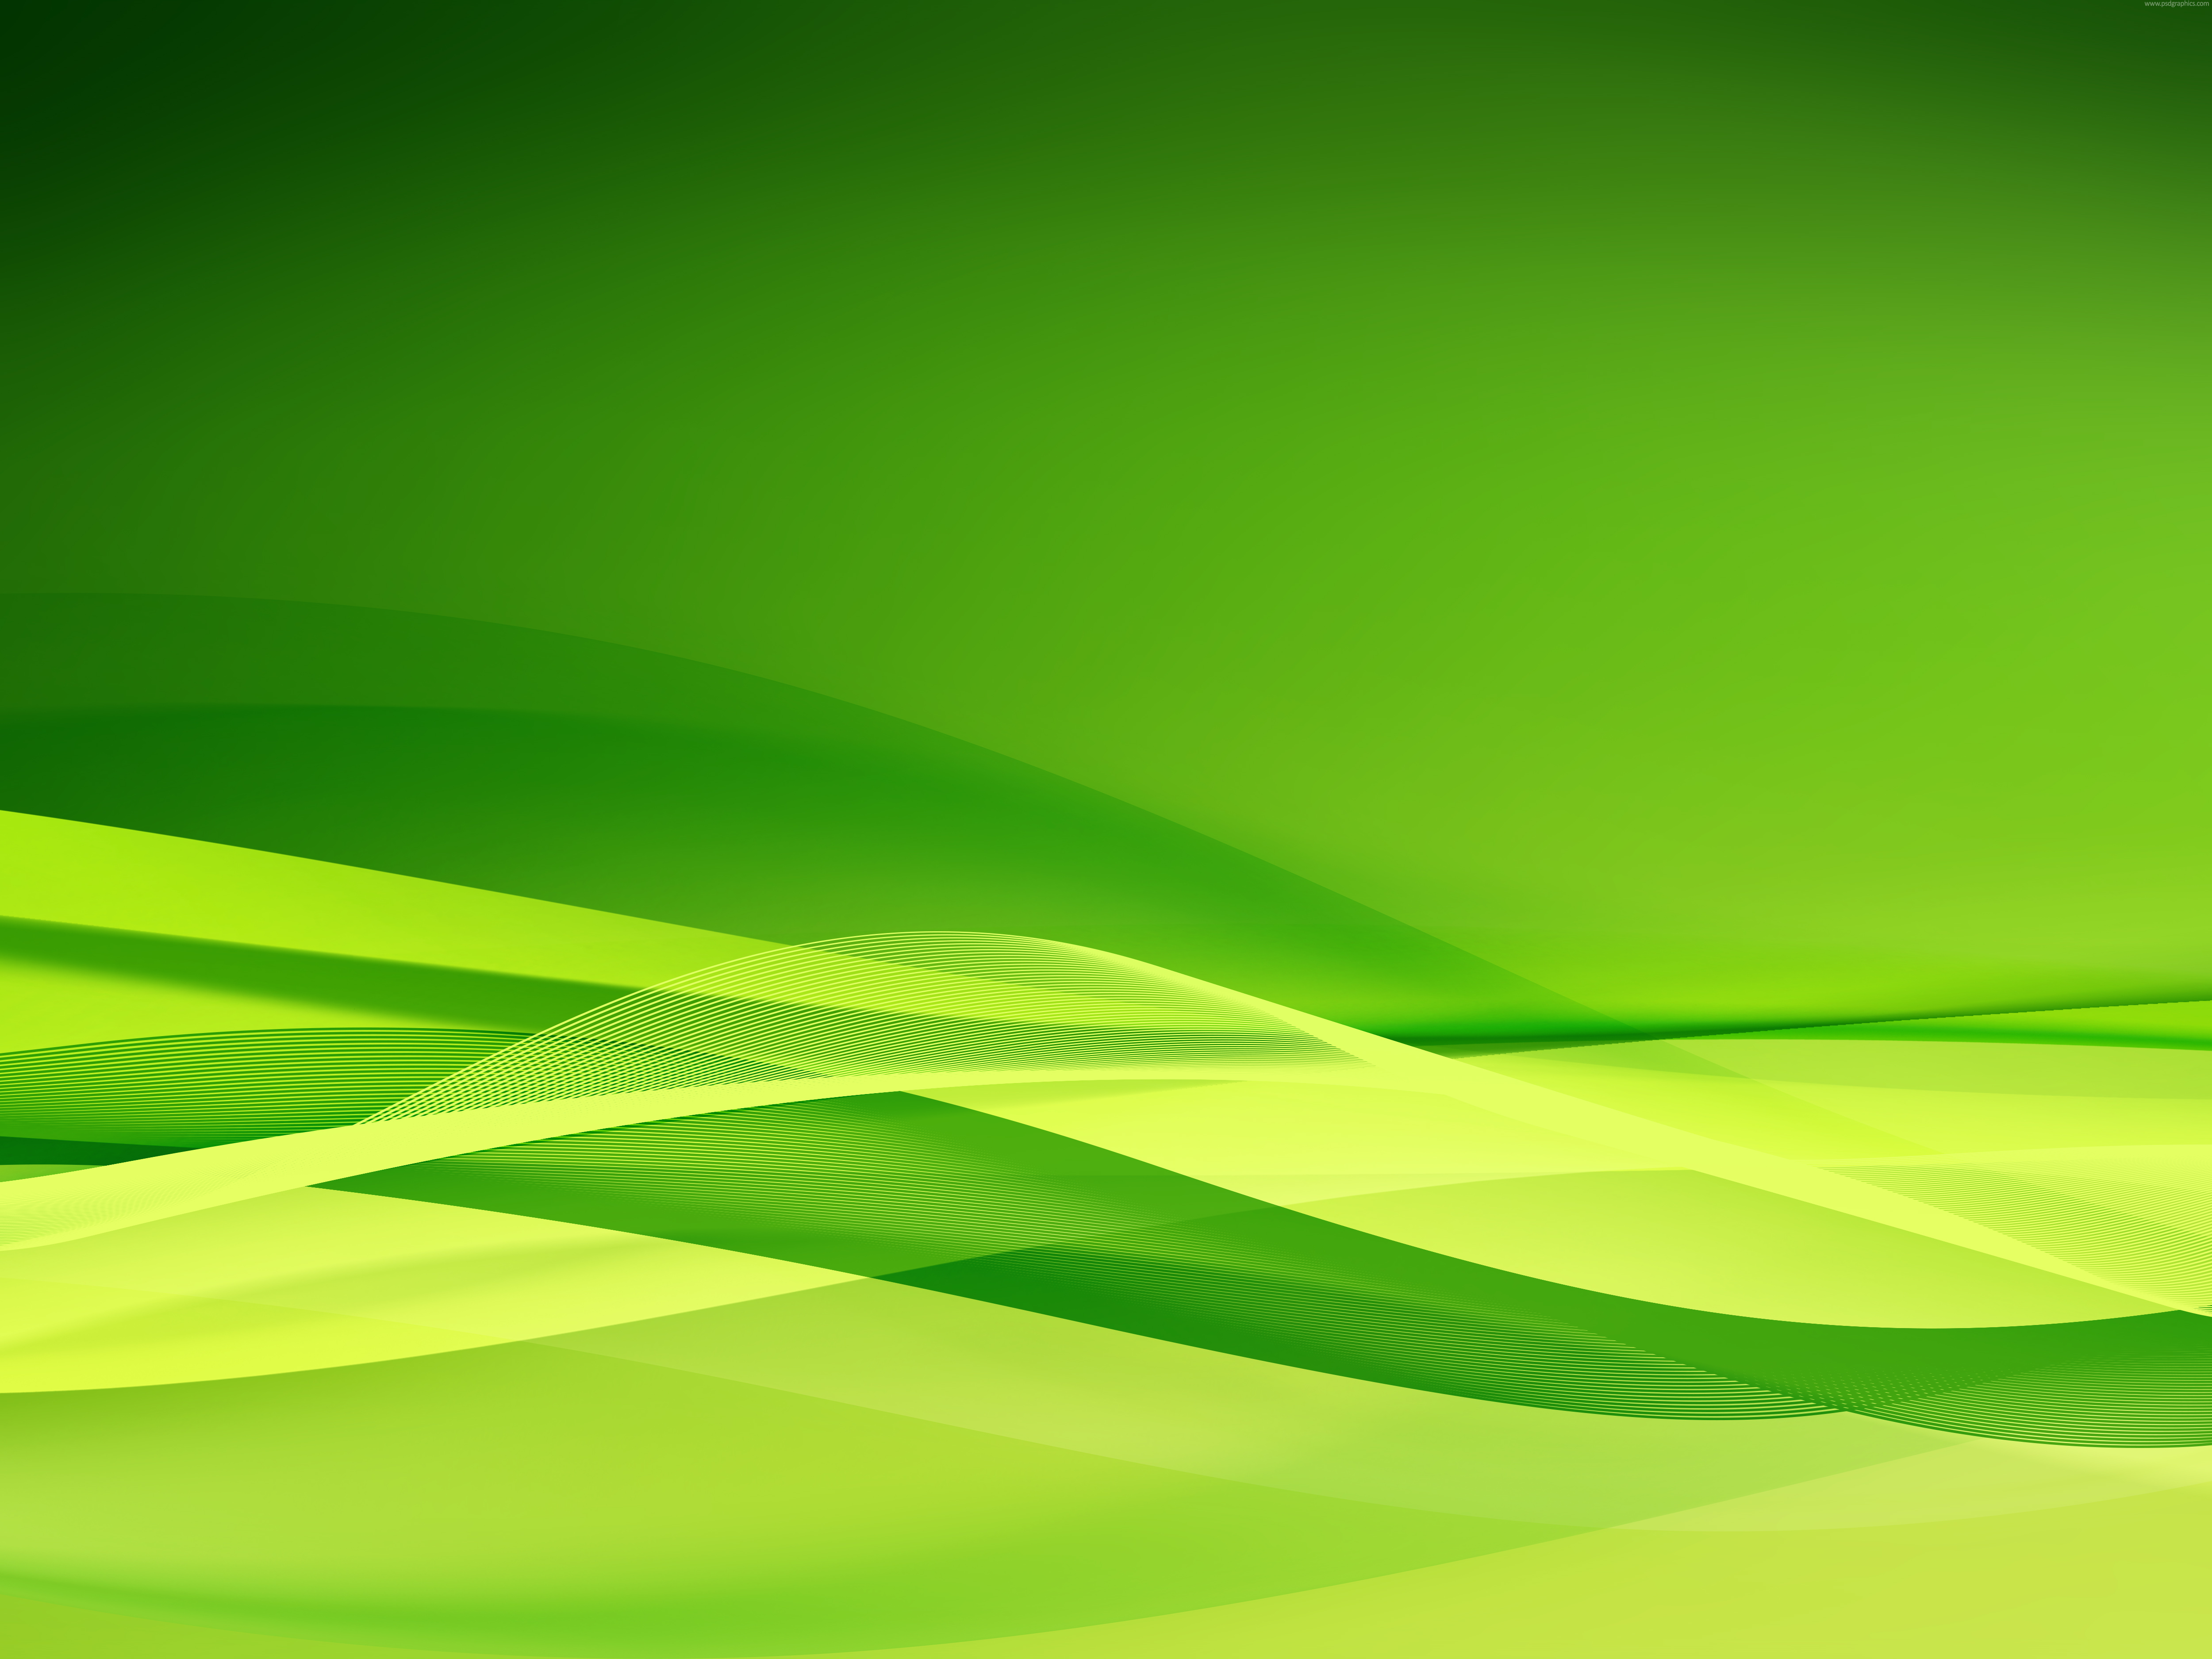 lime color background - photo #30